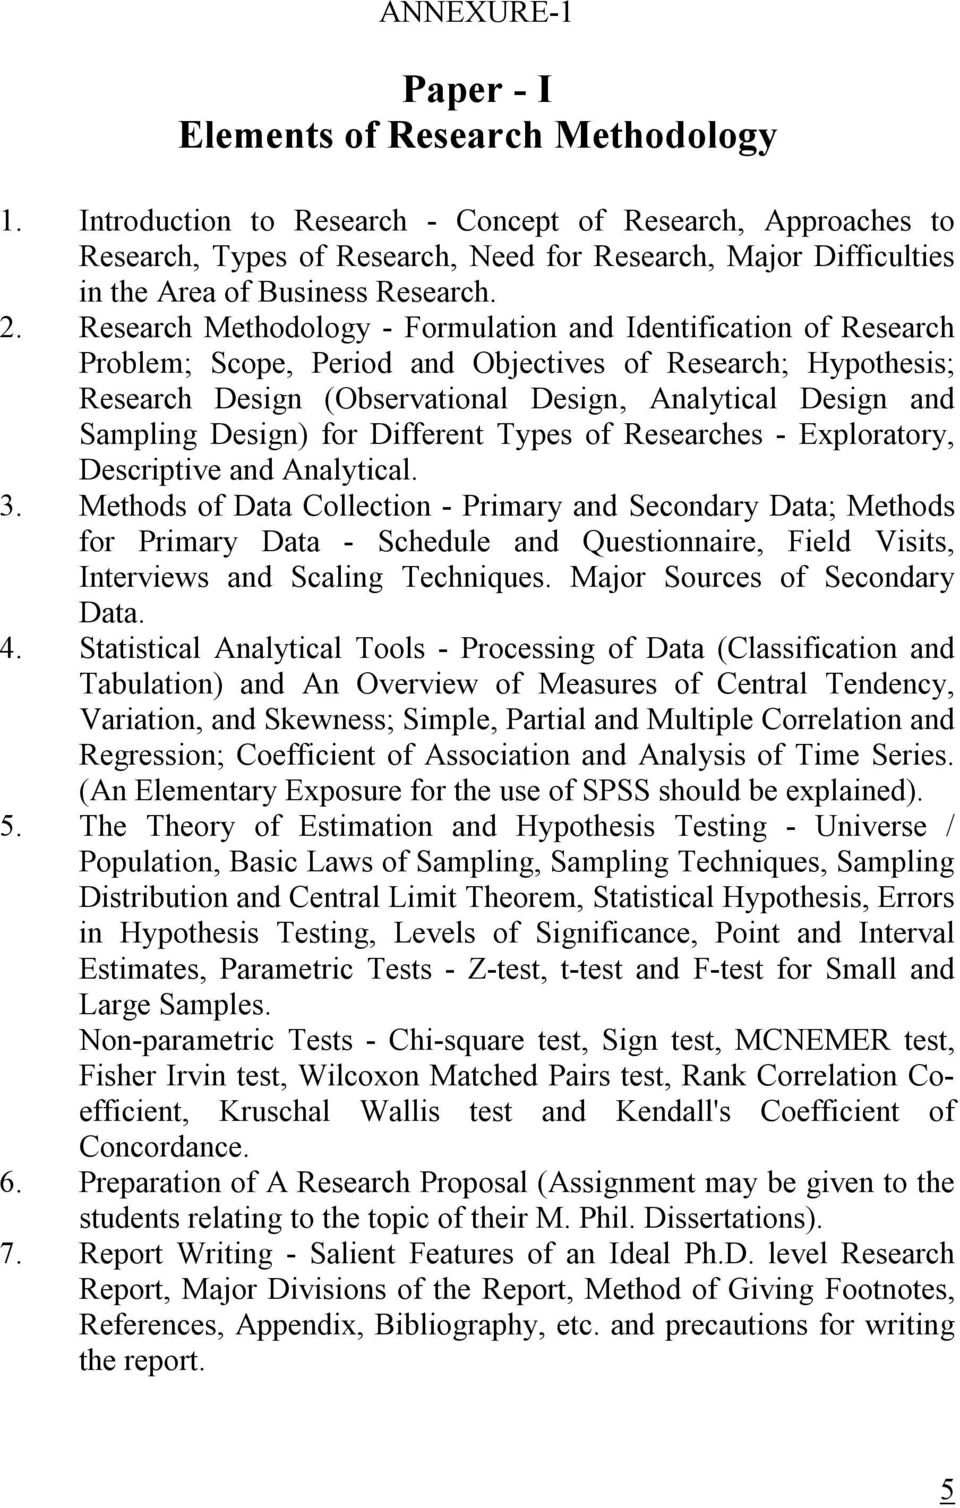 Research Methodology - Formulation and Identification of Research Problem; Scope, Period and Objectives of Research; Hypothesis; Research Design (Observational Design, Analytical Design and Sampling